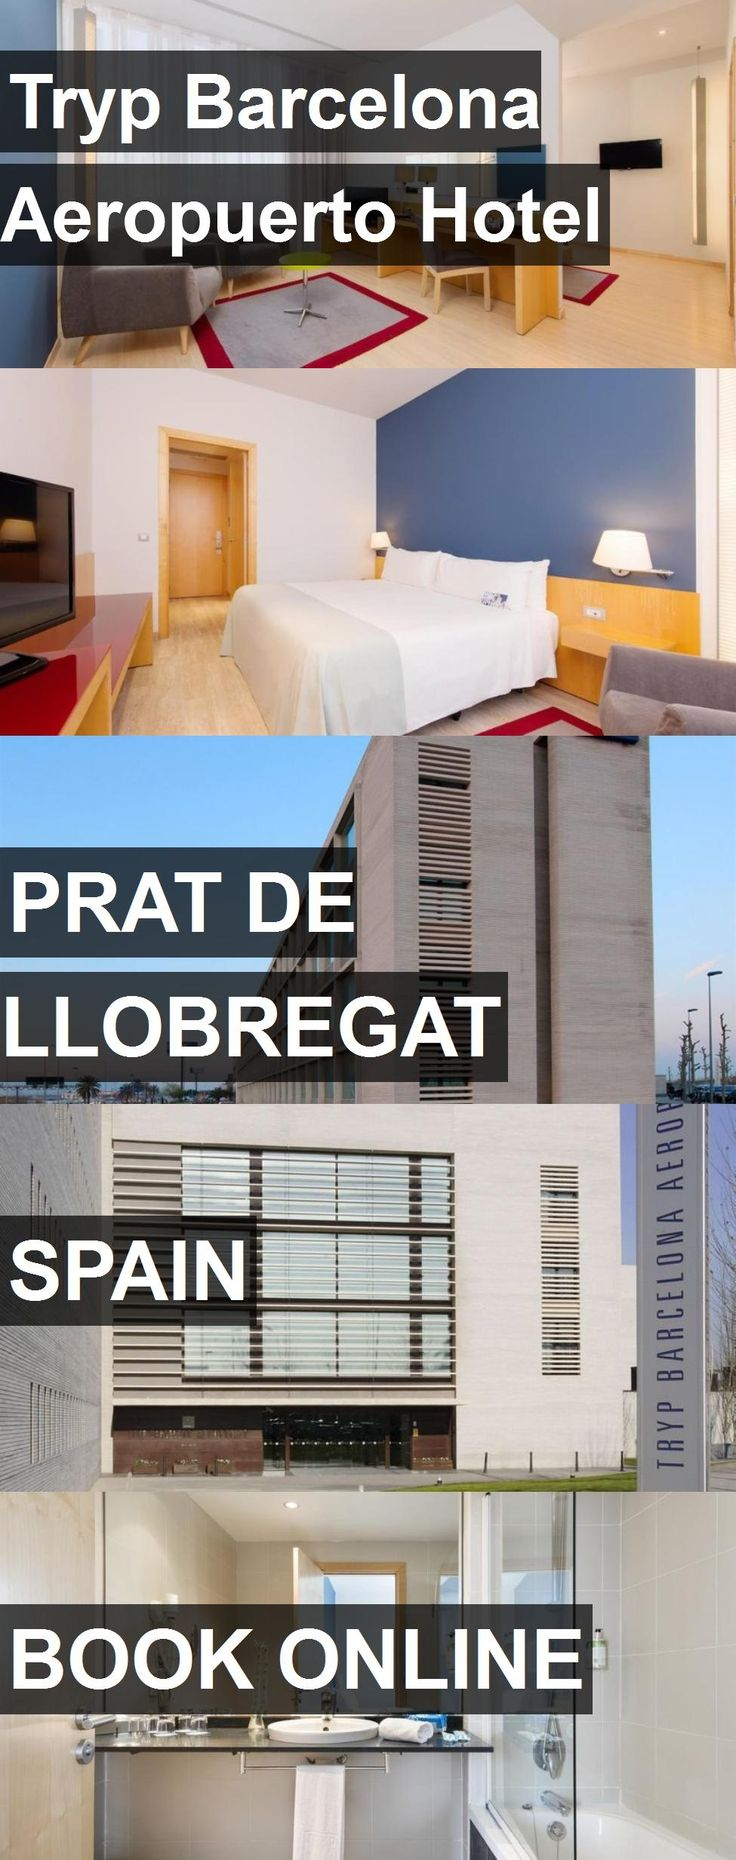 Hotel Tryp Barcelona Aeropuerto Hotel in Prat de Llobregat, Spain. For more information, photos, reviews and best prices please follow the link. #Spain #PratdeLlobregat #TrypBarcelonaAeropuertoHotel #hotel #travel #vacation